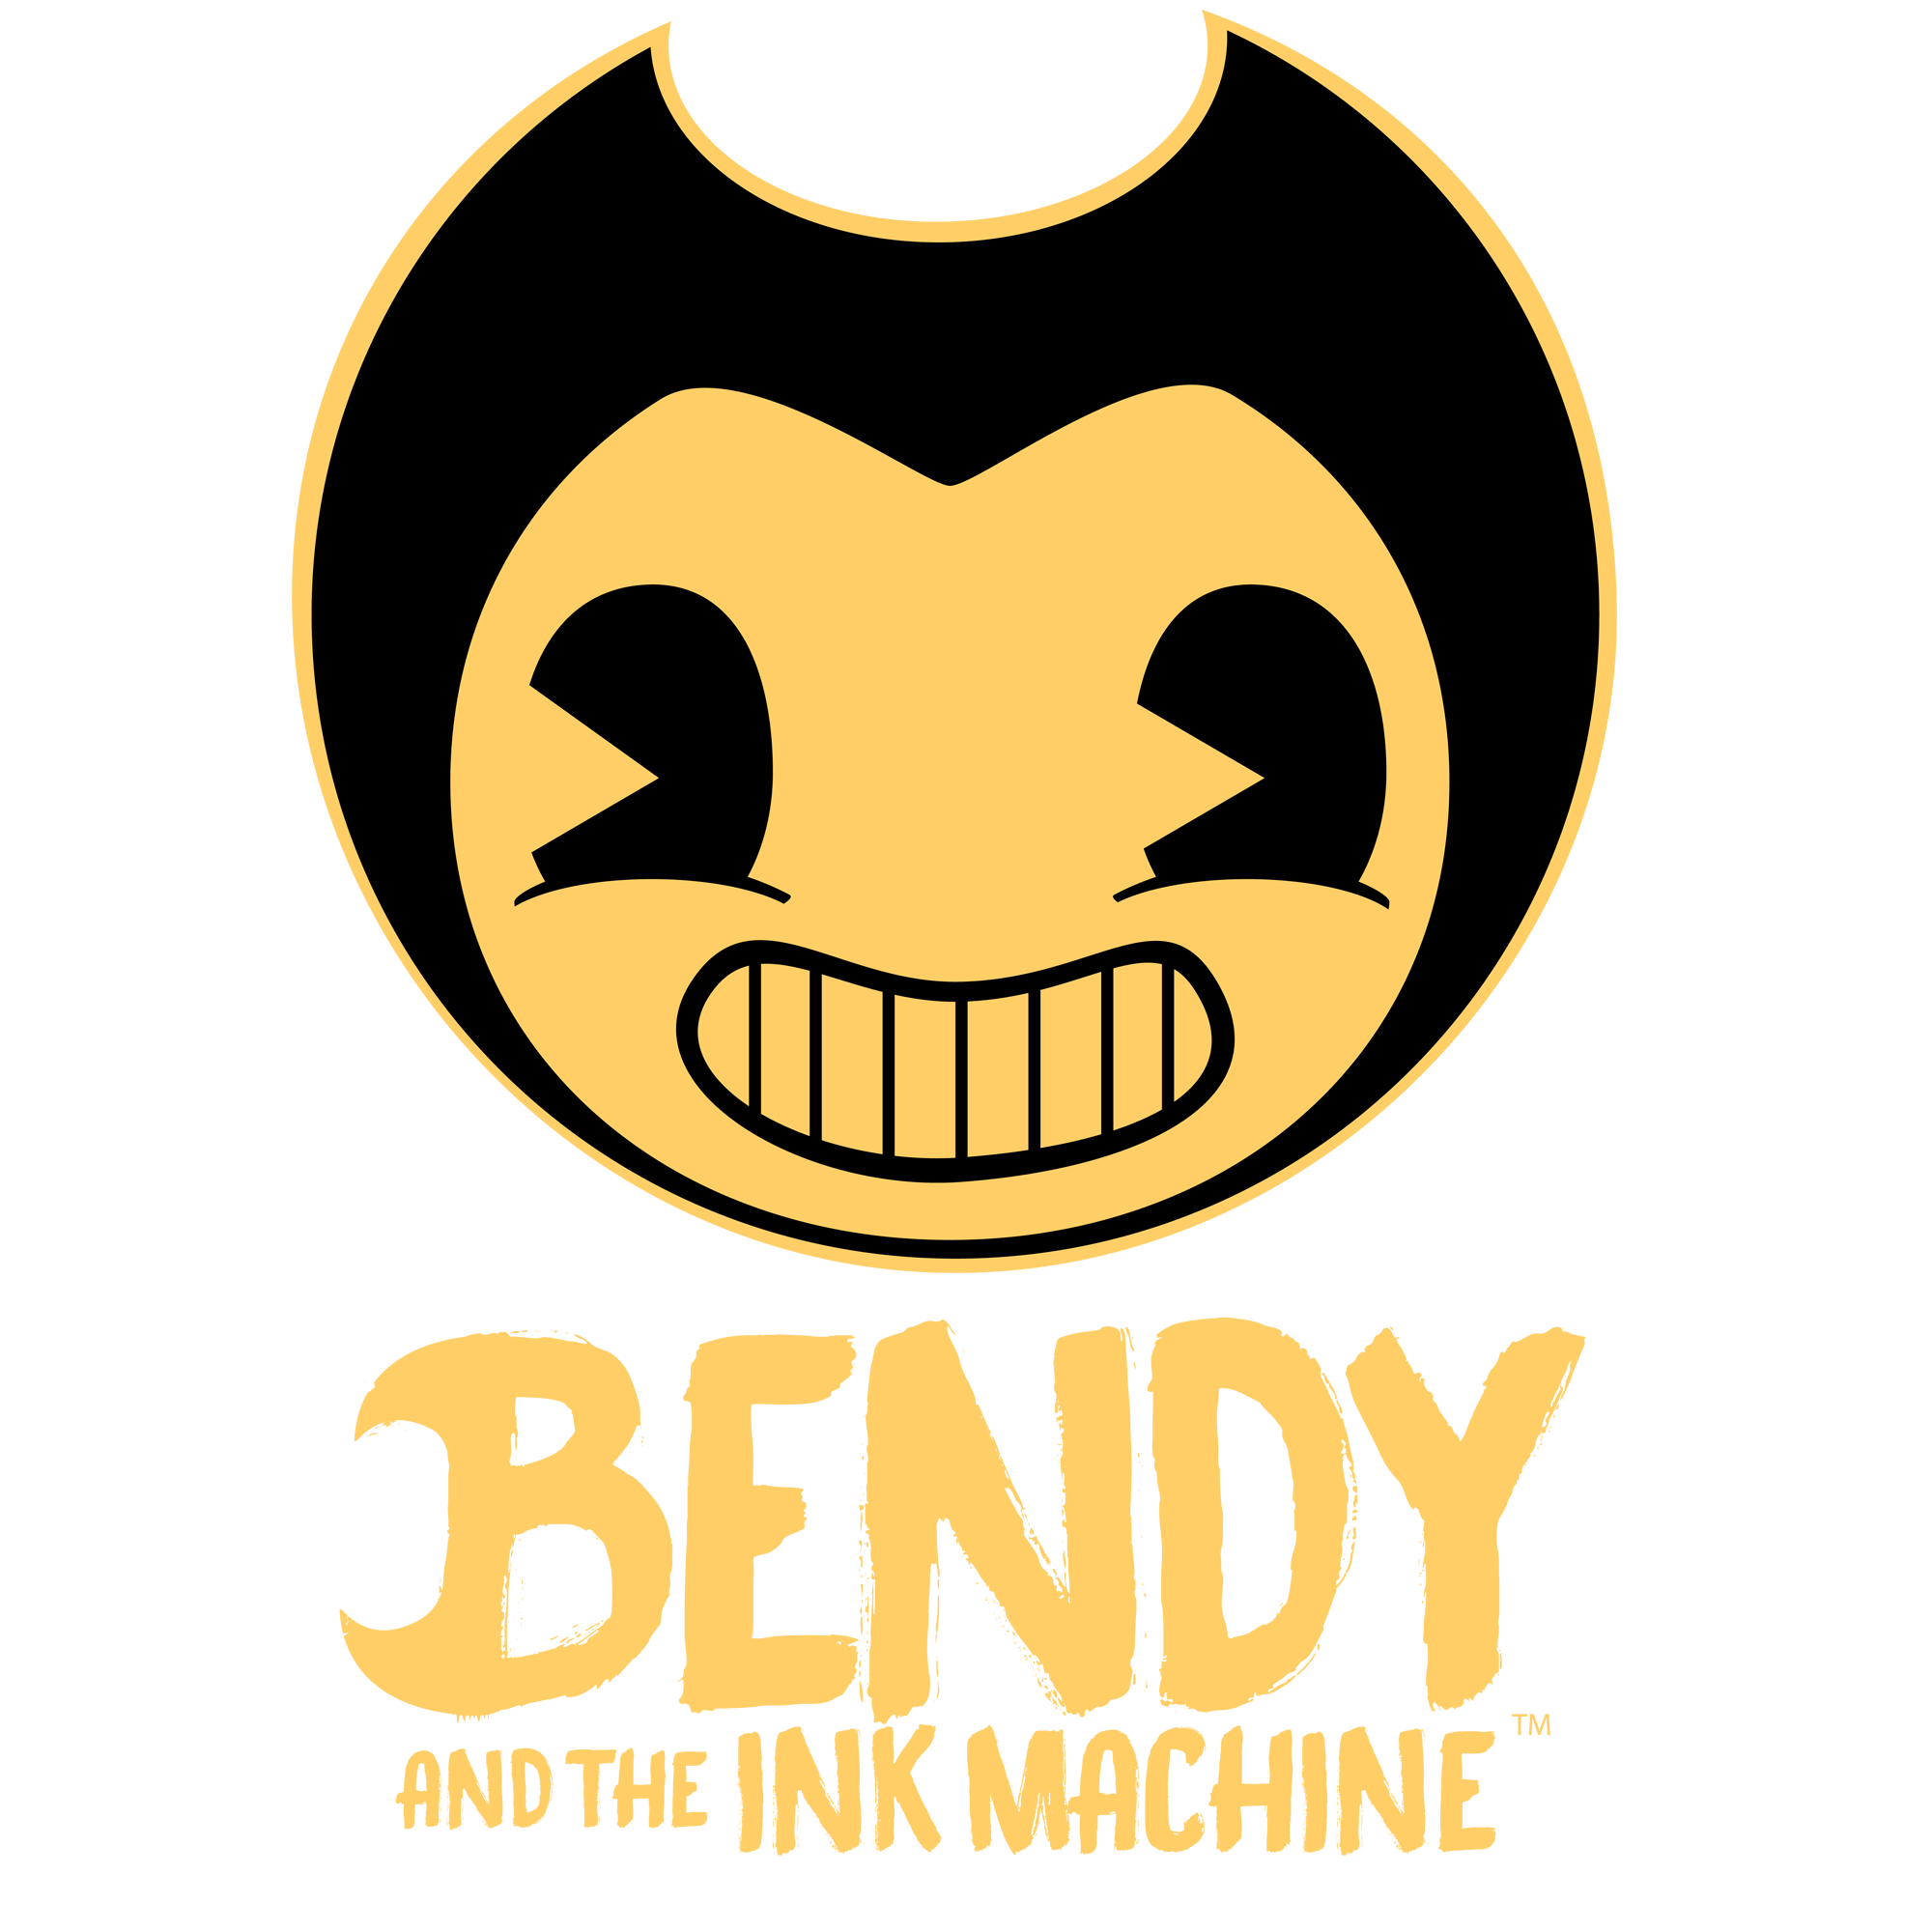 Bendy in the Ink Machine